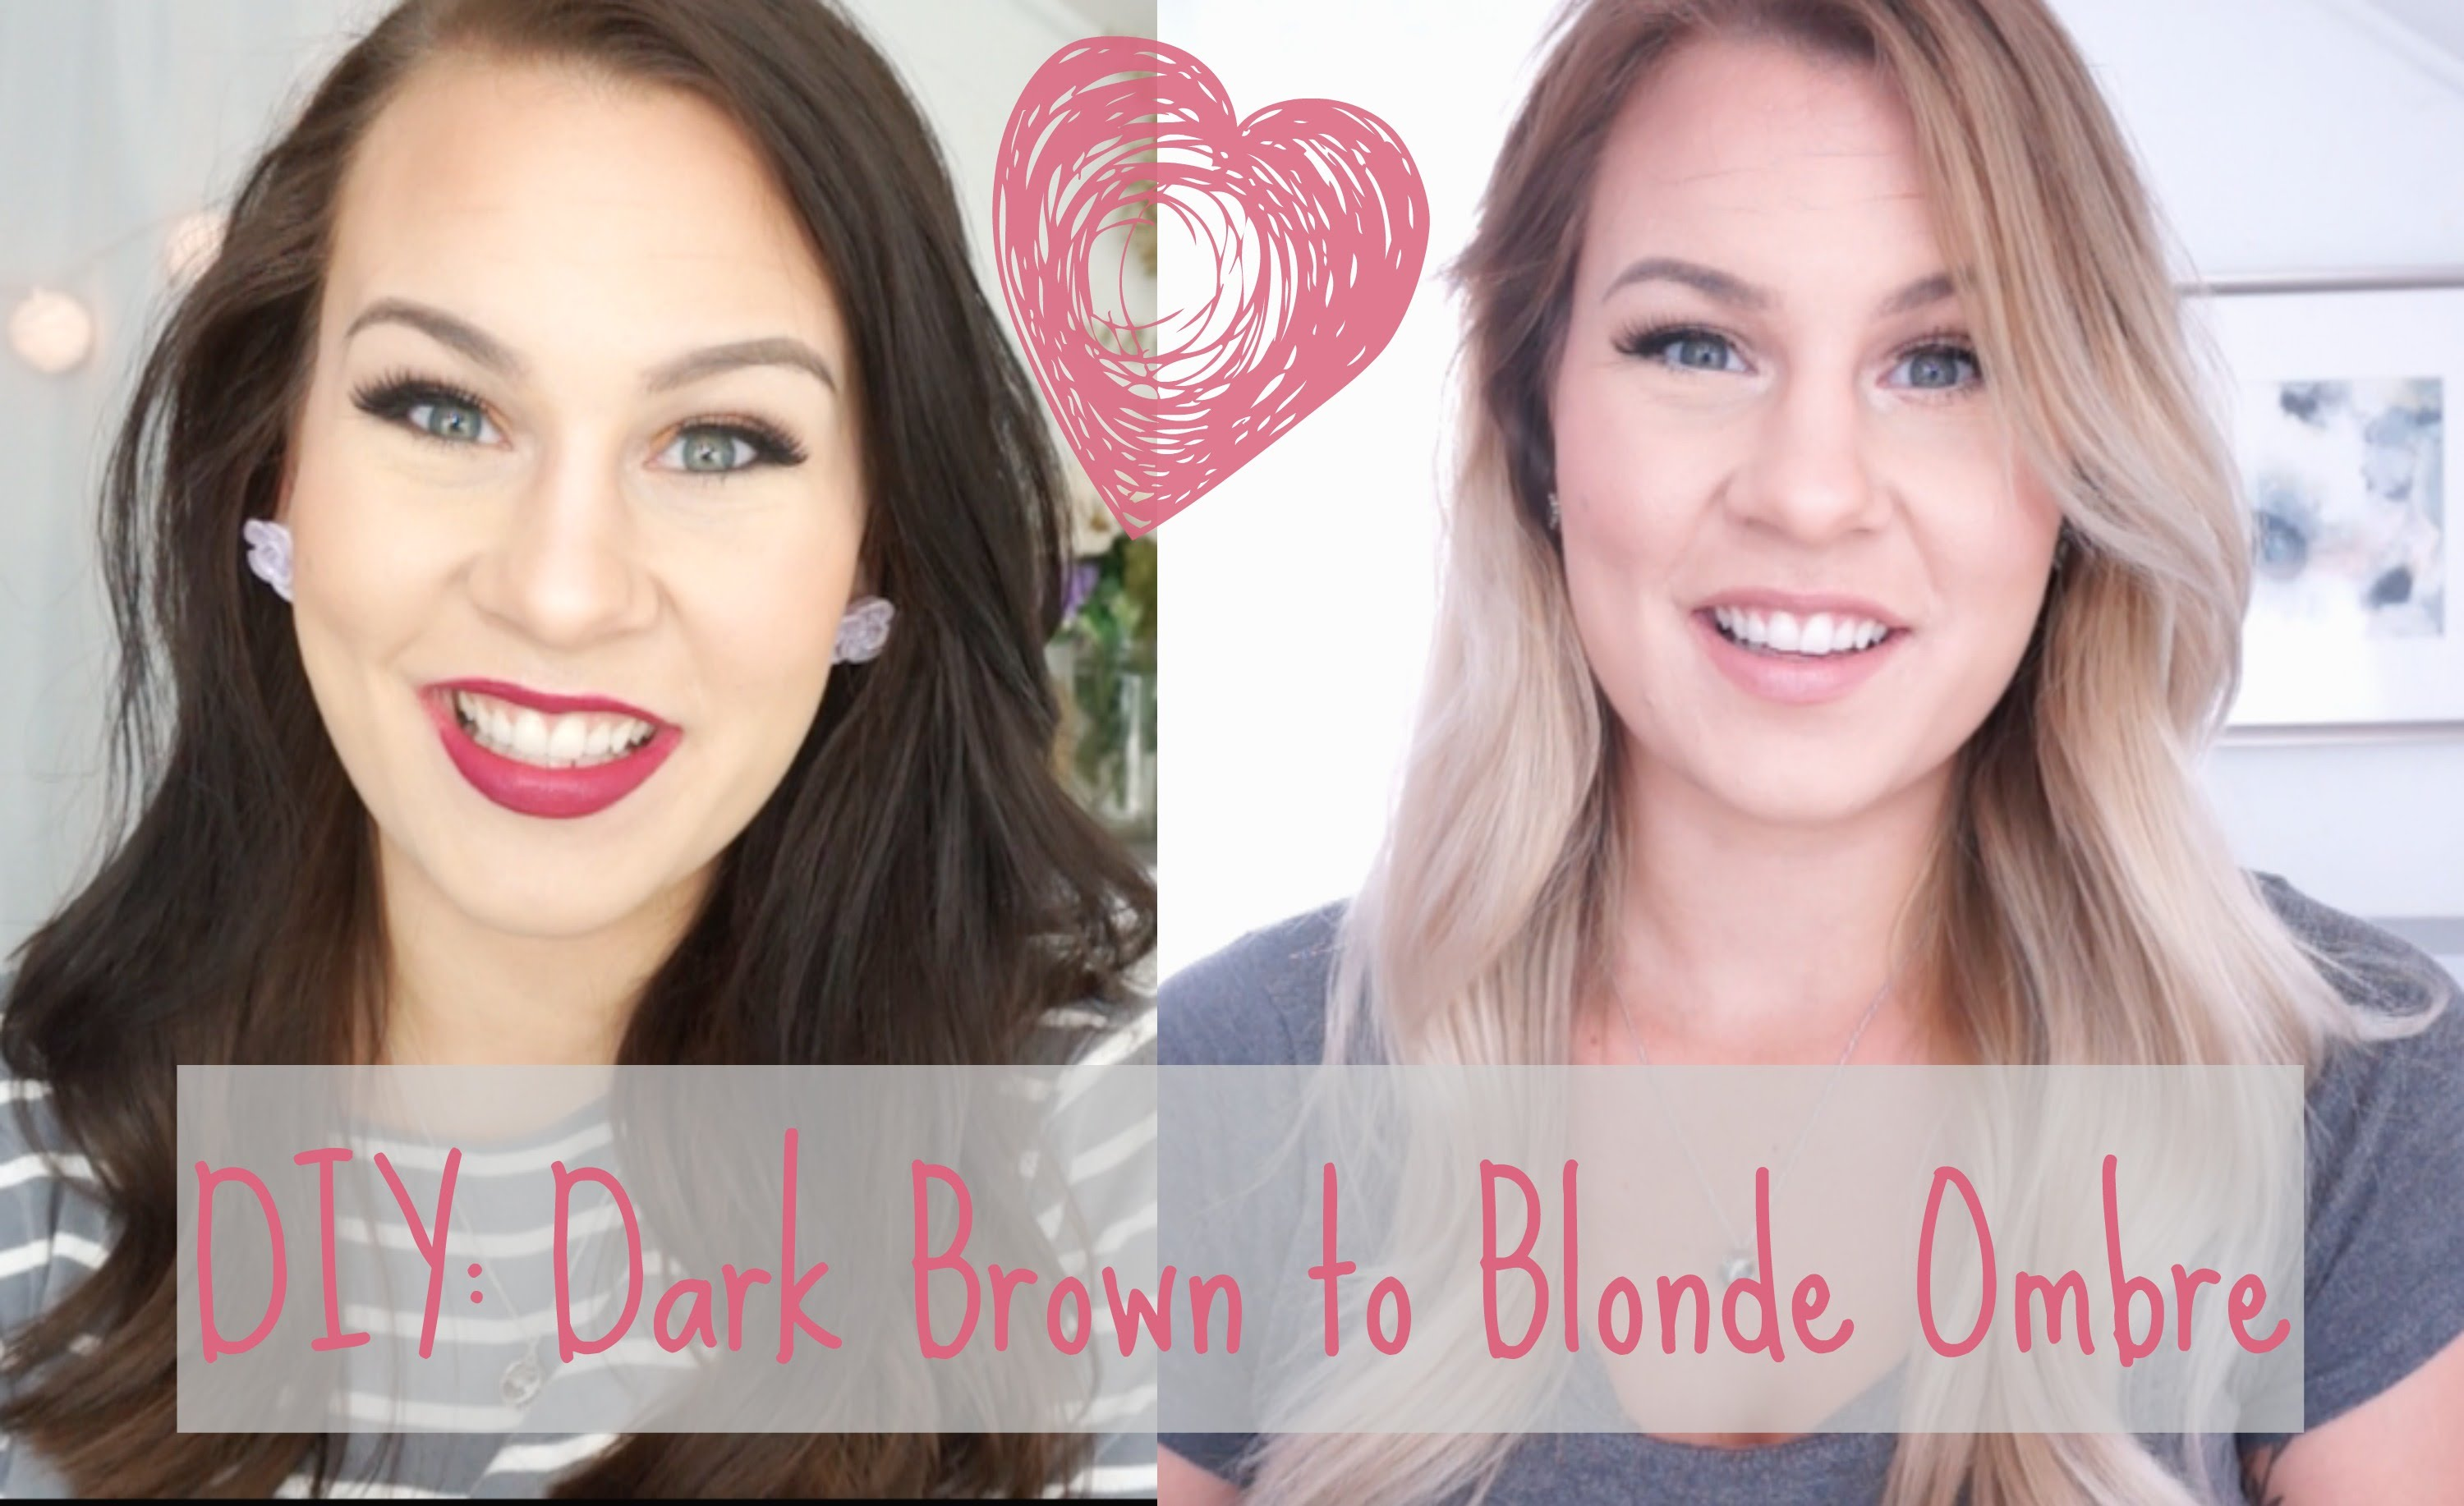 Diy dark brown to blonde ombre hair